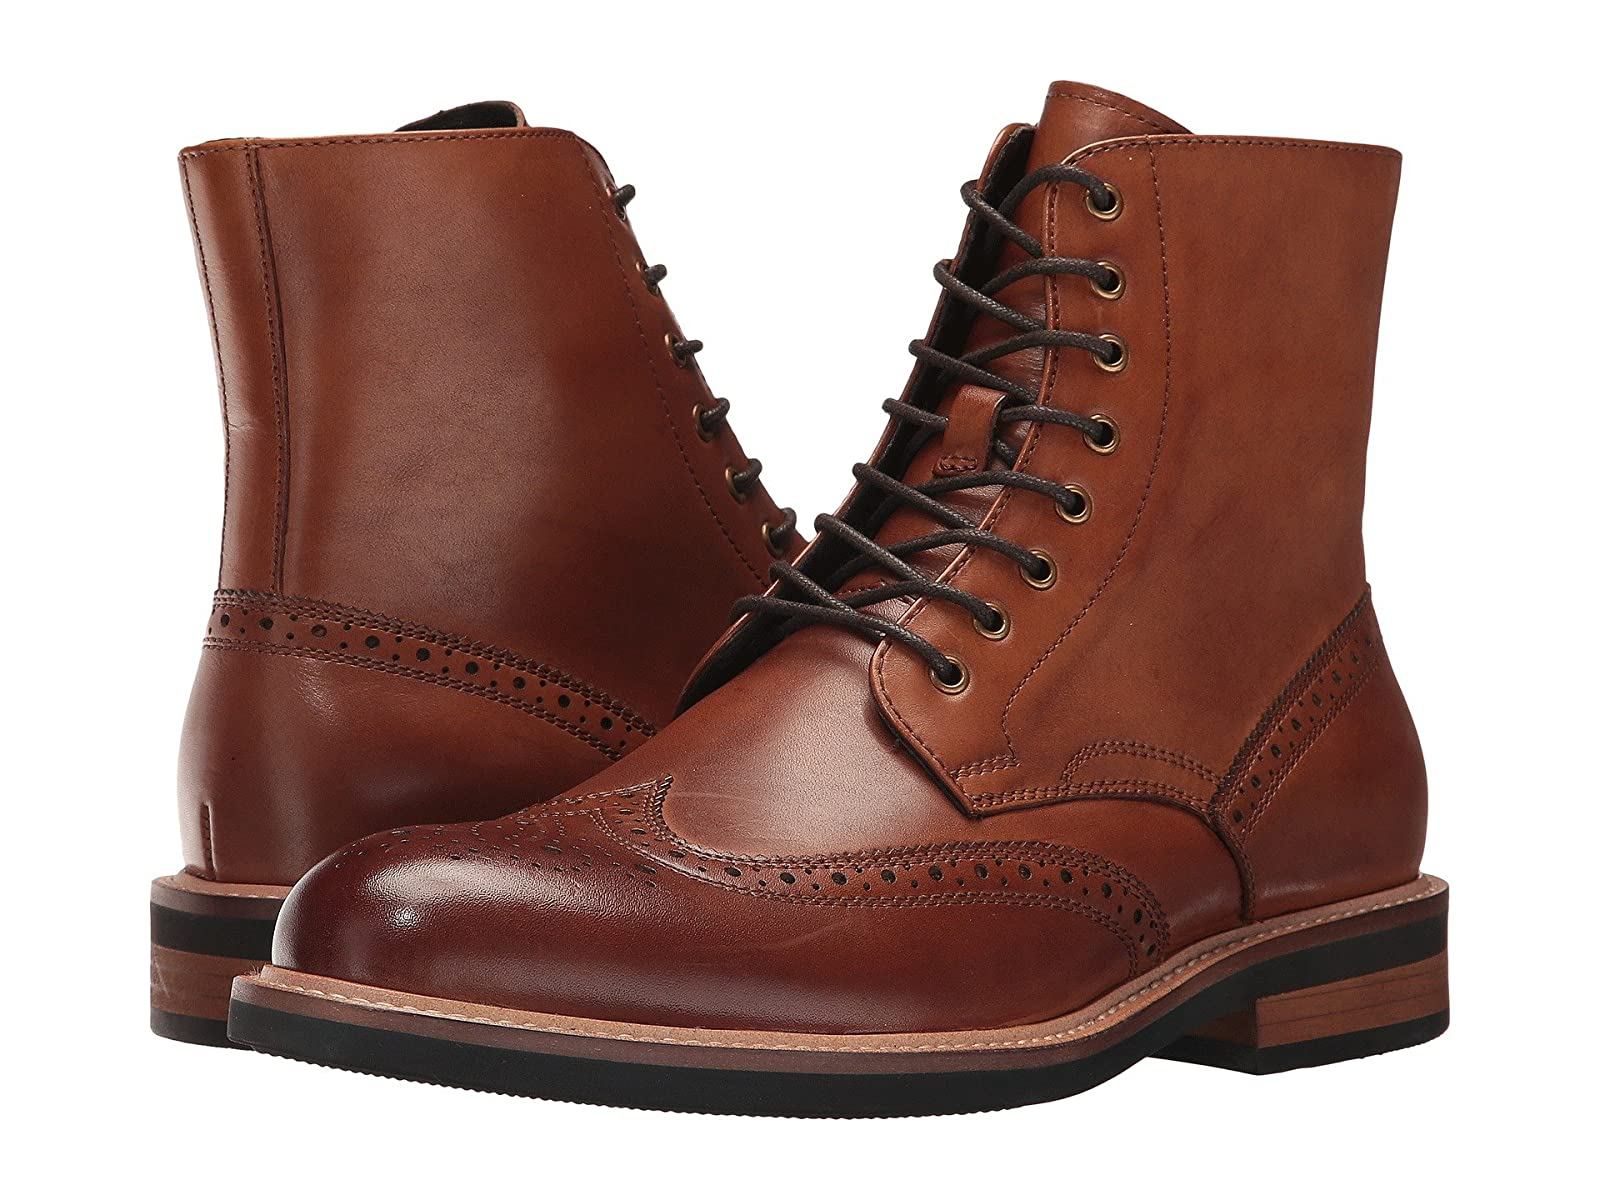 Kenneth Cole Reaction Design 20635Cheap and distinctive eye-catching shoes